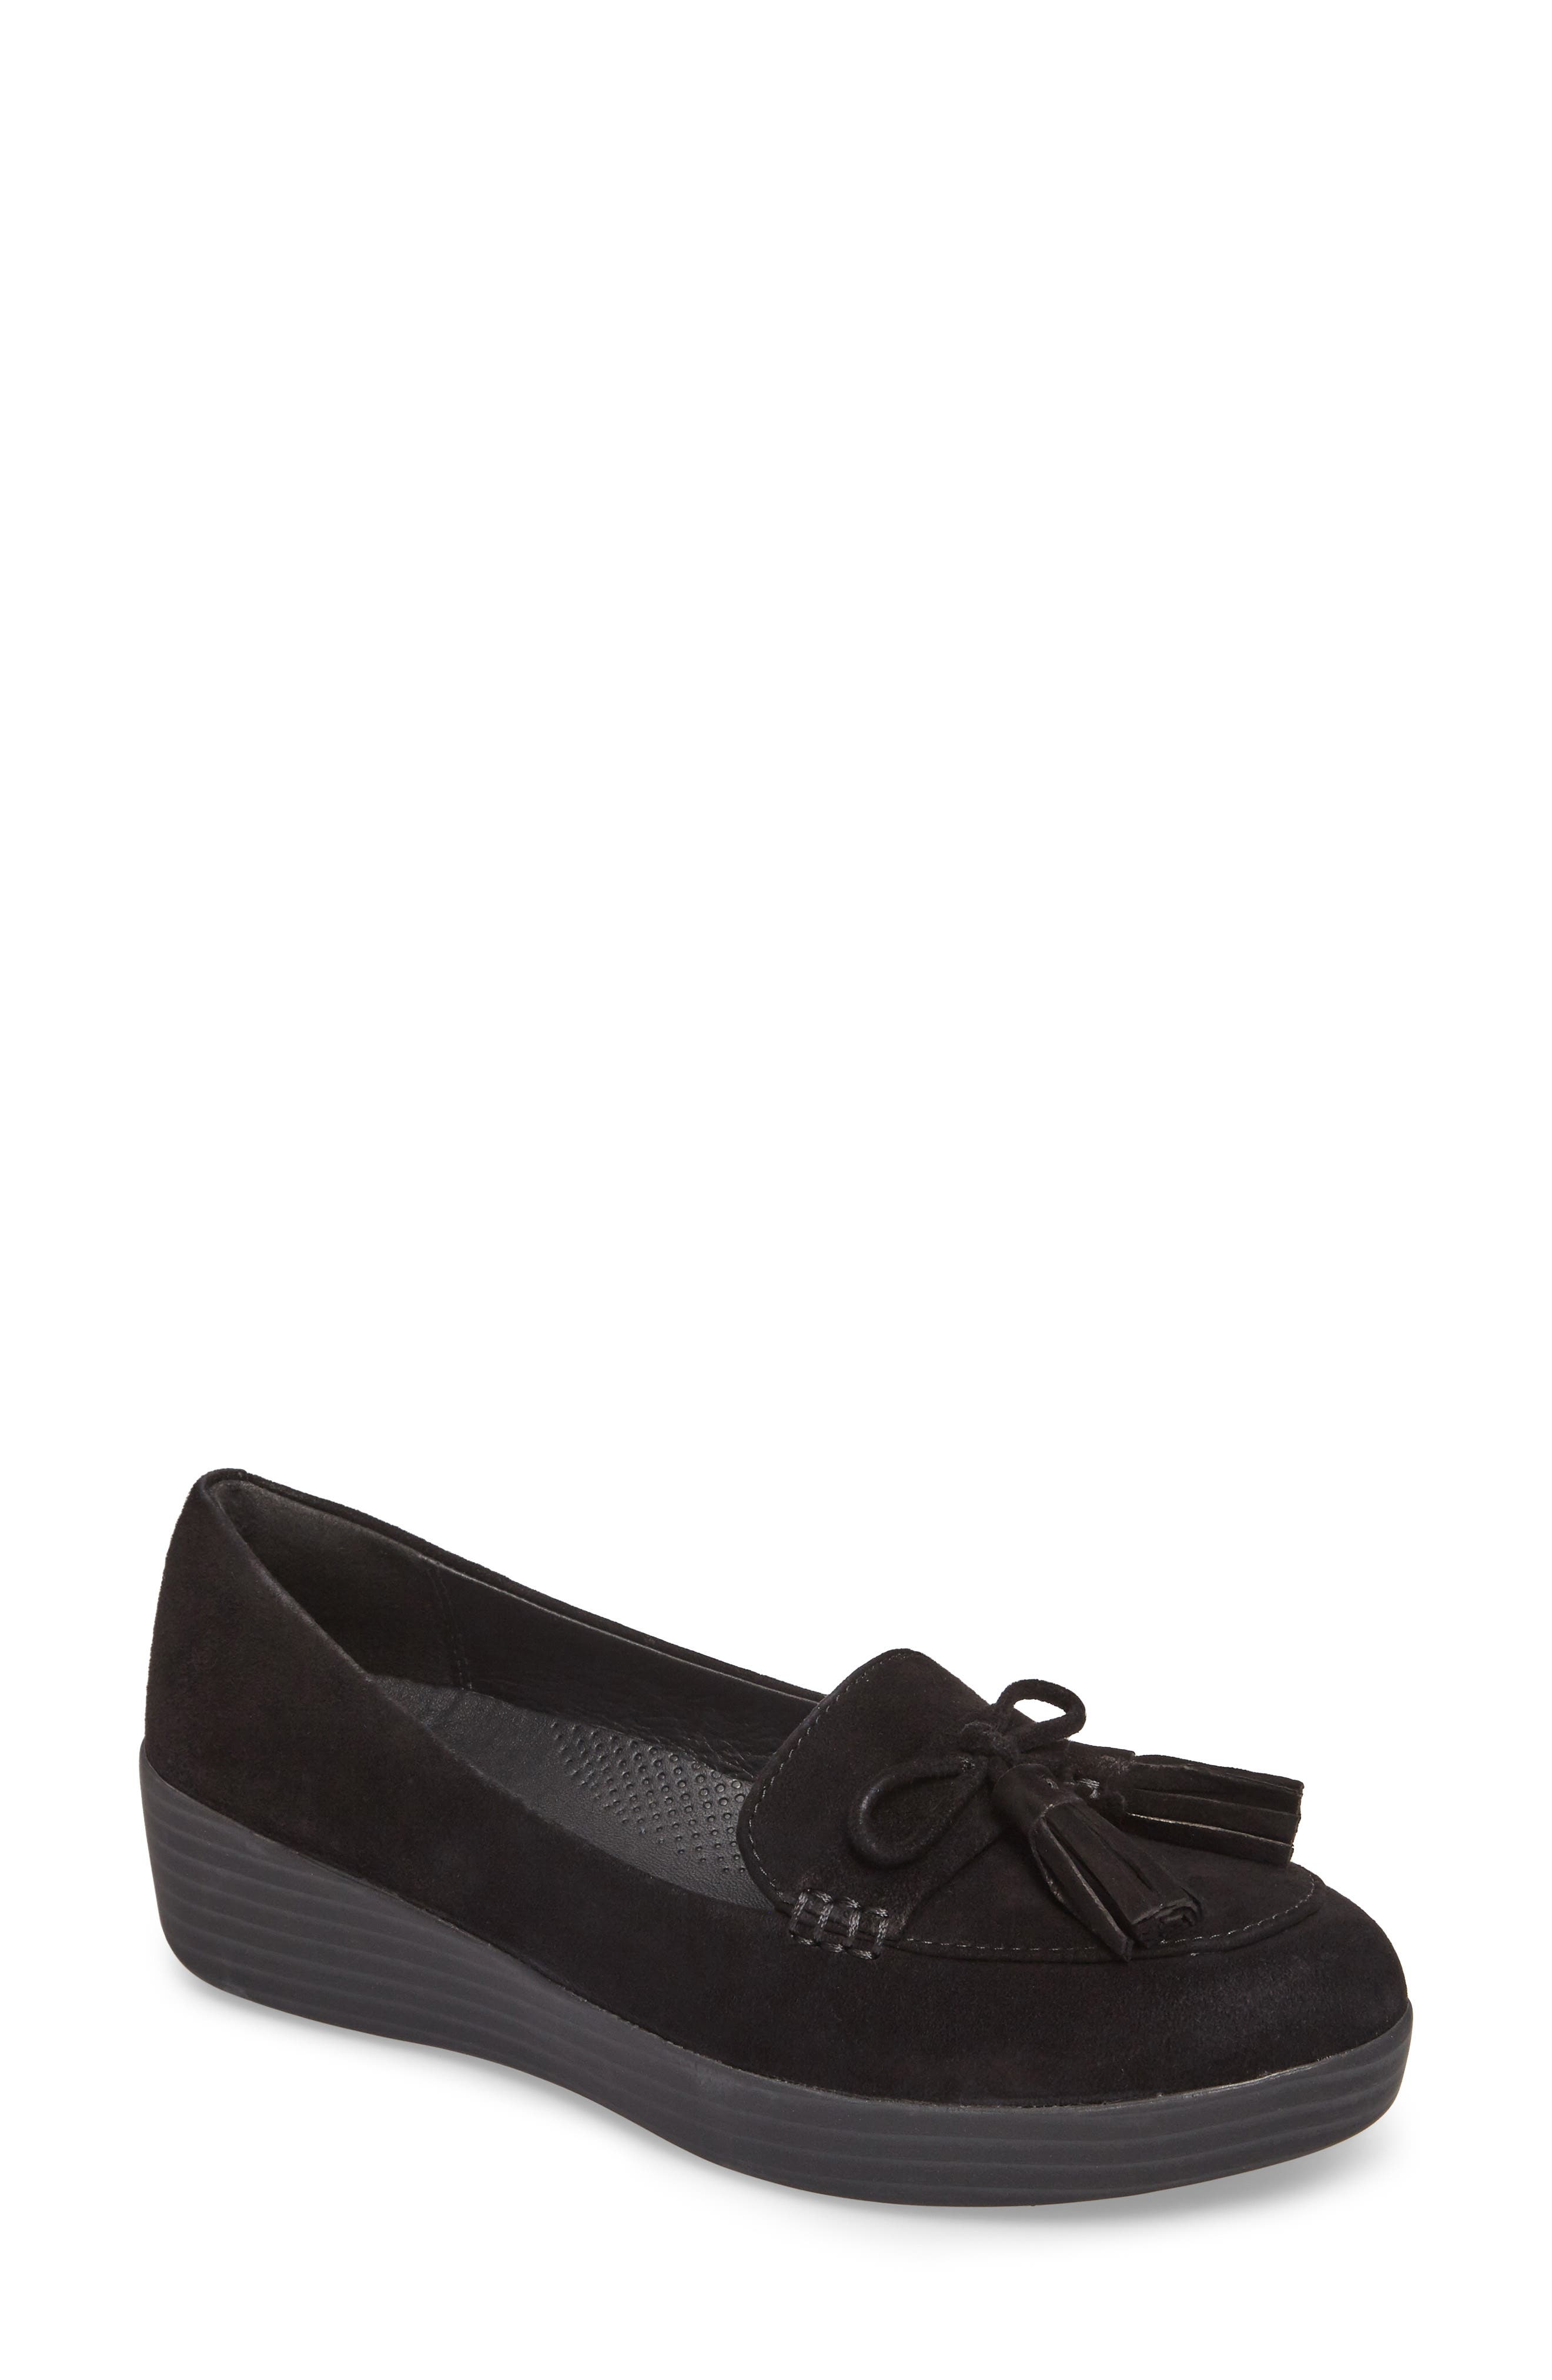 Tassel Bow Sneakerloafer<sup>™</sup> Water Repellent Flat,                             Main thumbnail 1, color,                             001